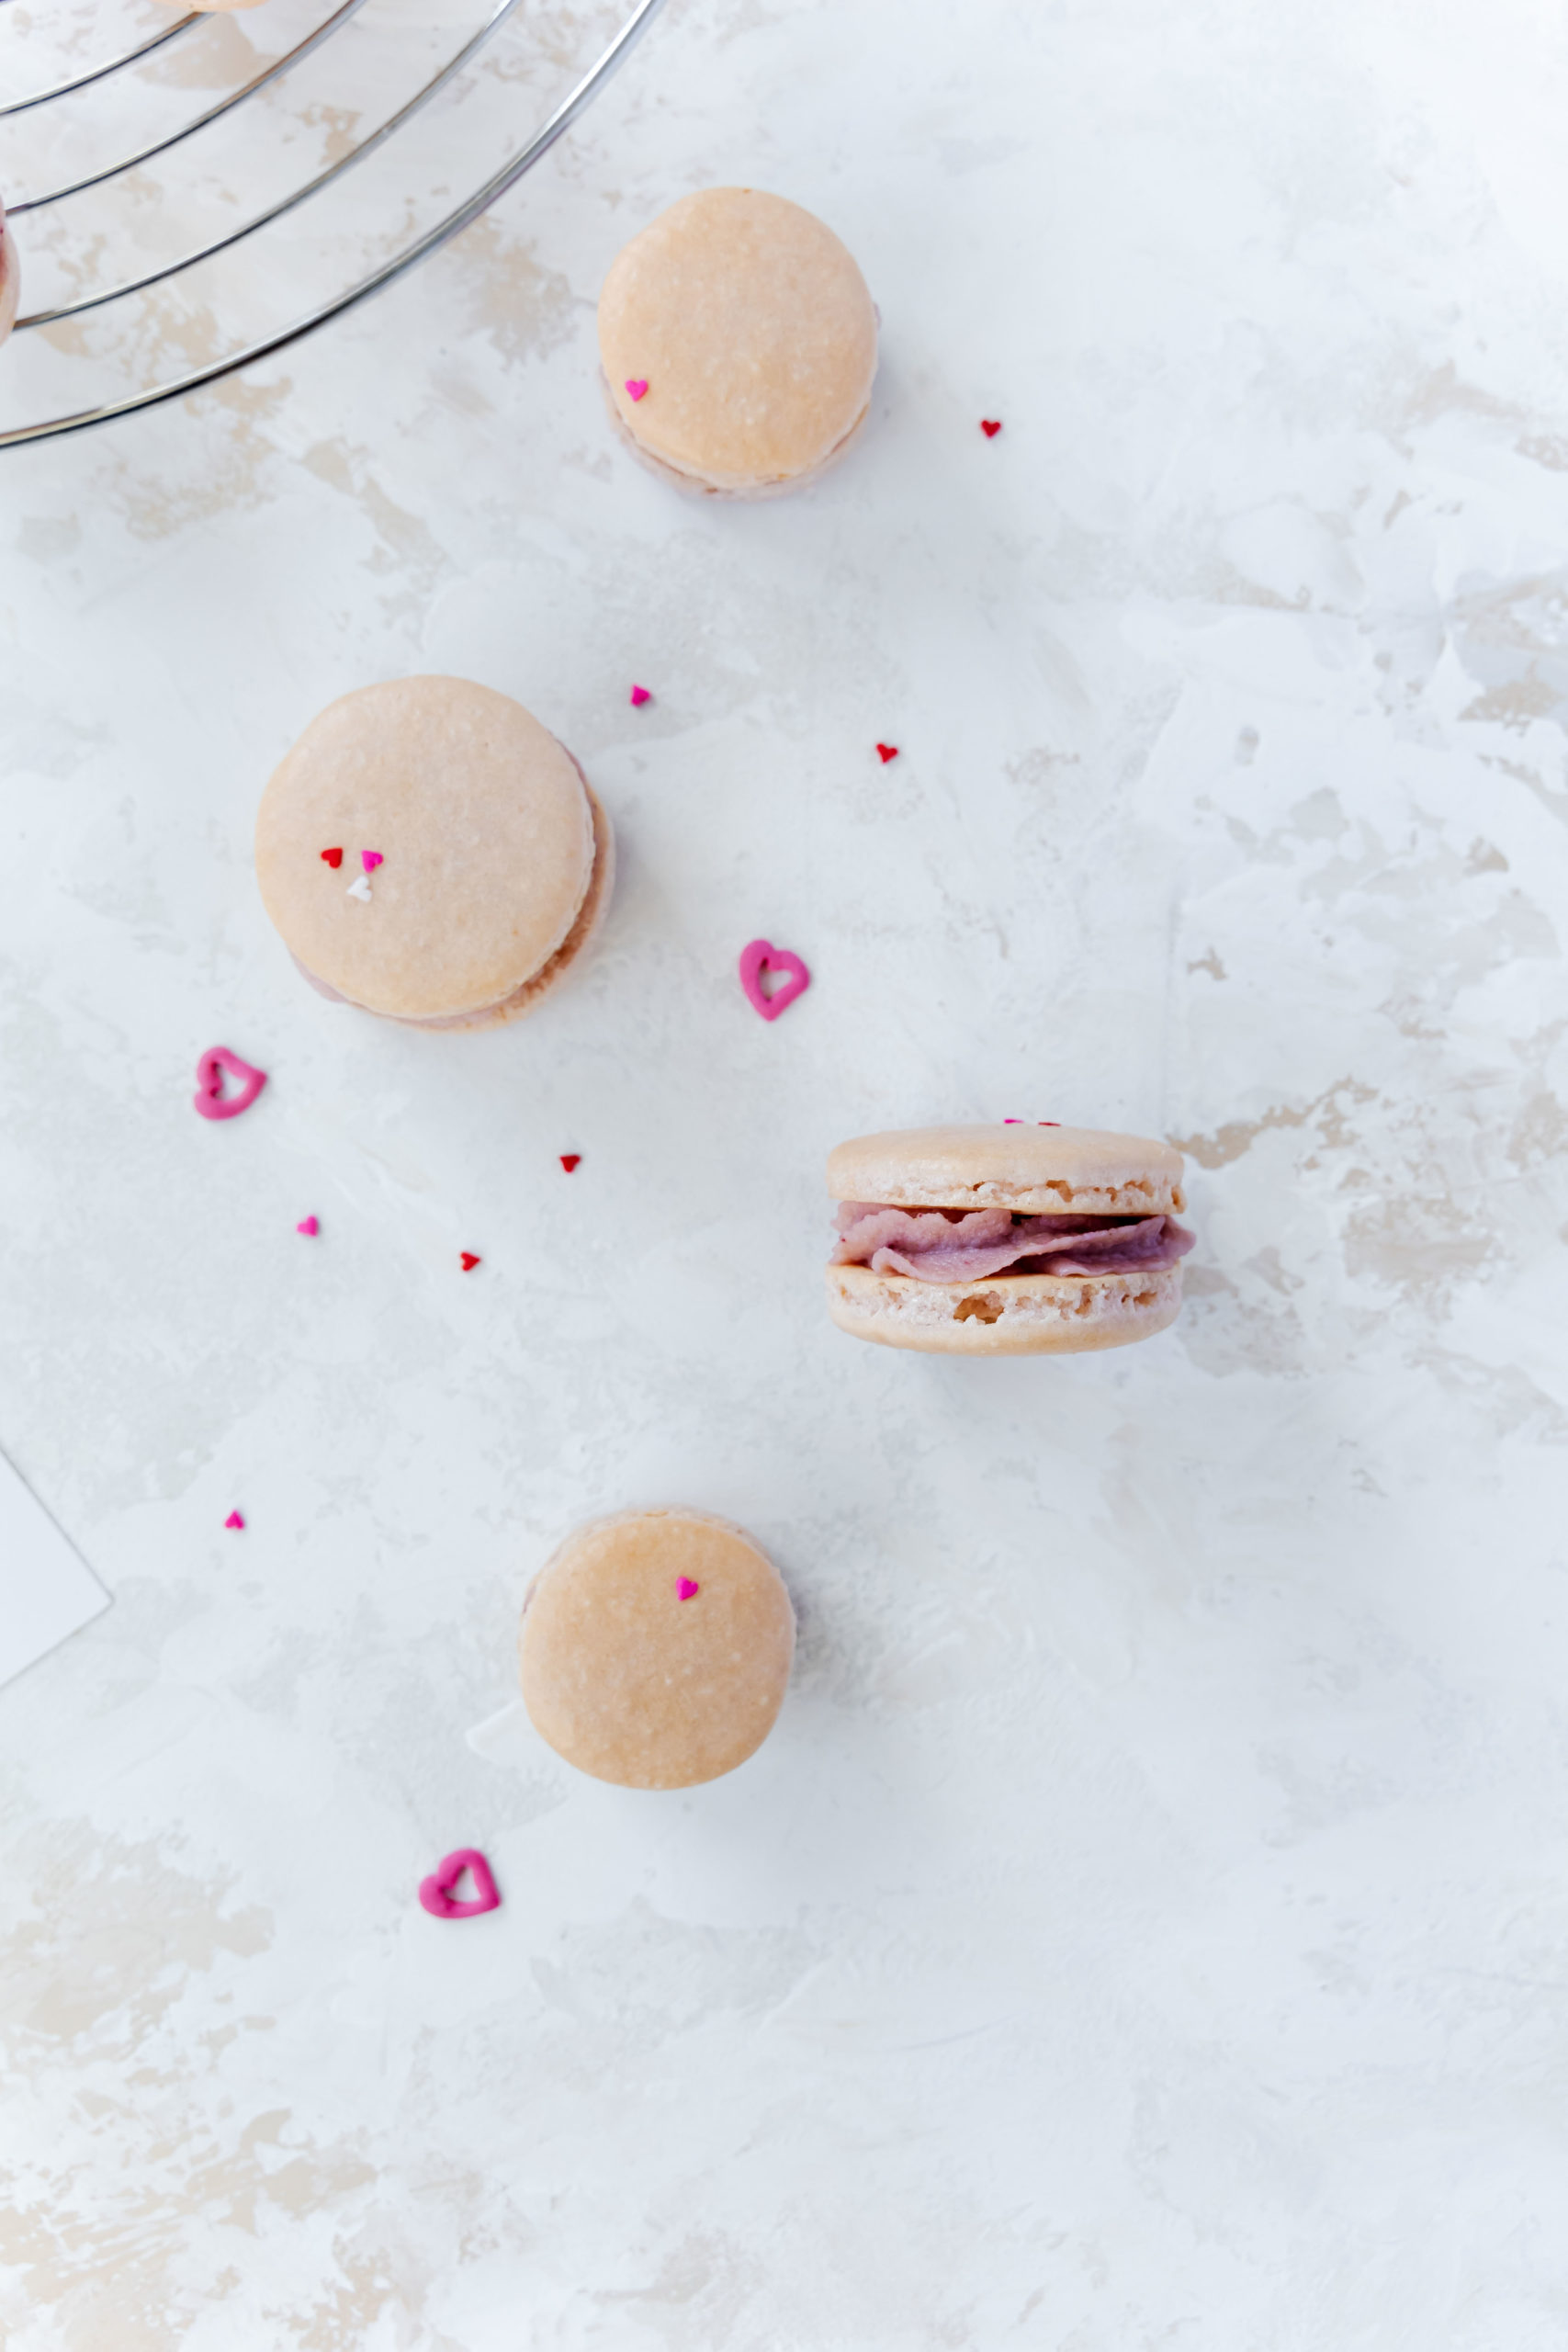 Himbeer Macarons zum Valentinstag / raspberry Macarobs for valentines day by https://babyrockmyday.com/himbeer-macarons/